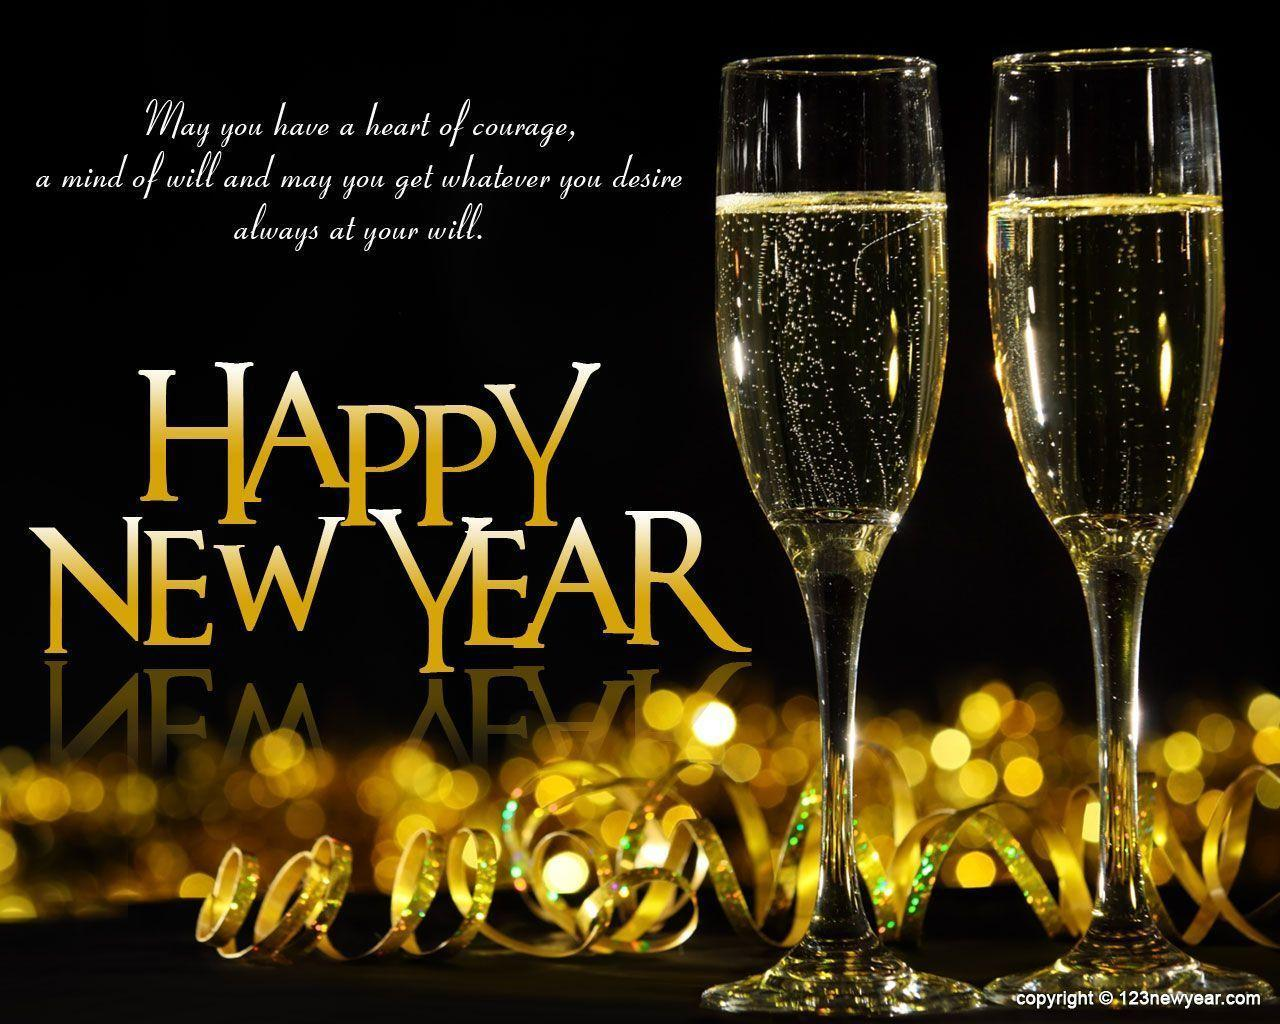 Image For > New Years Eve Wallpapers 2013